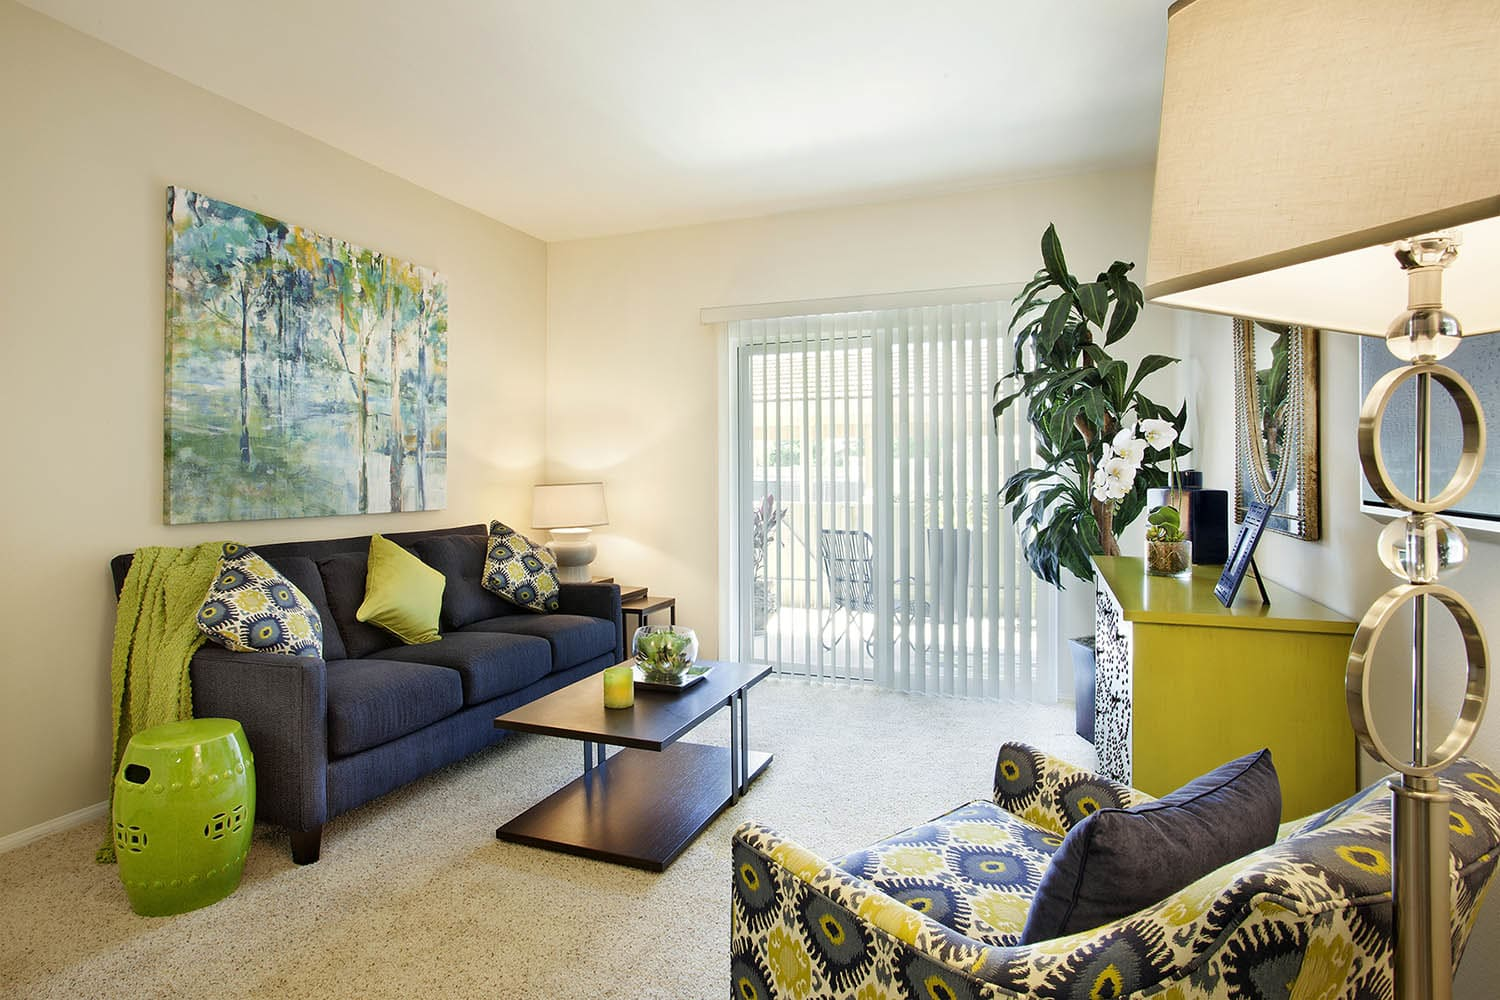 Living Room at Willow Springs Apartments in Goleta, CA